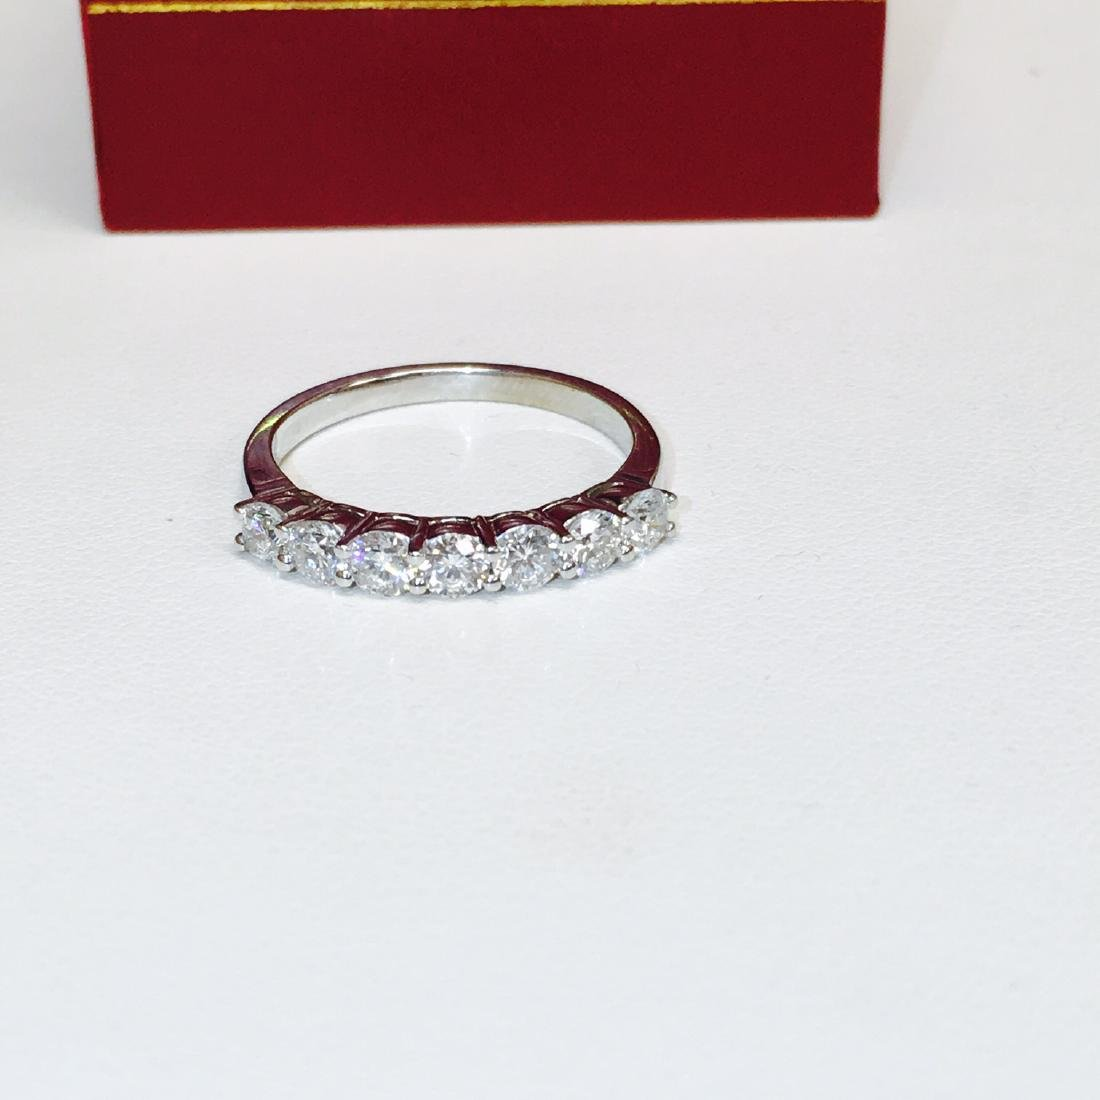 VVS Clarity and F Color Diamond Engagement Ring